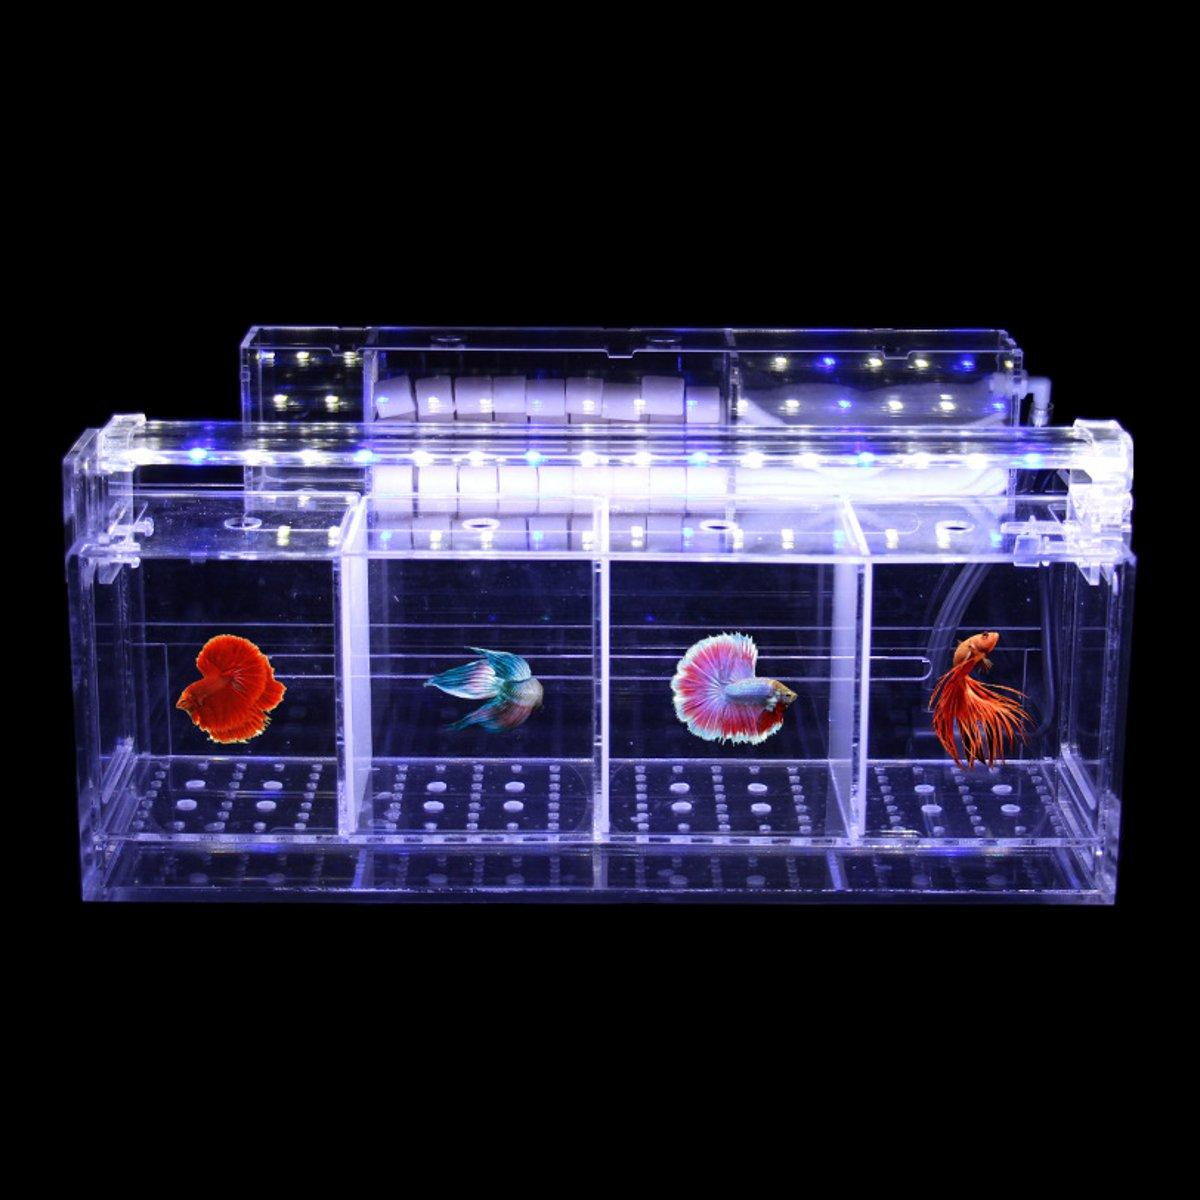 Acrylic Transparent Betta Fish Tank Mini Desktop Aquarium Filter Breeding Box A